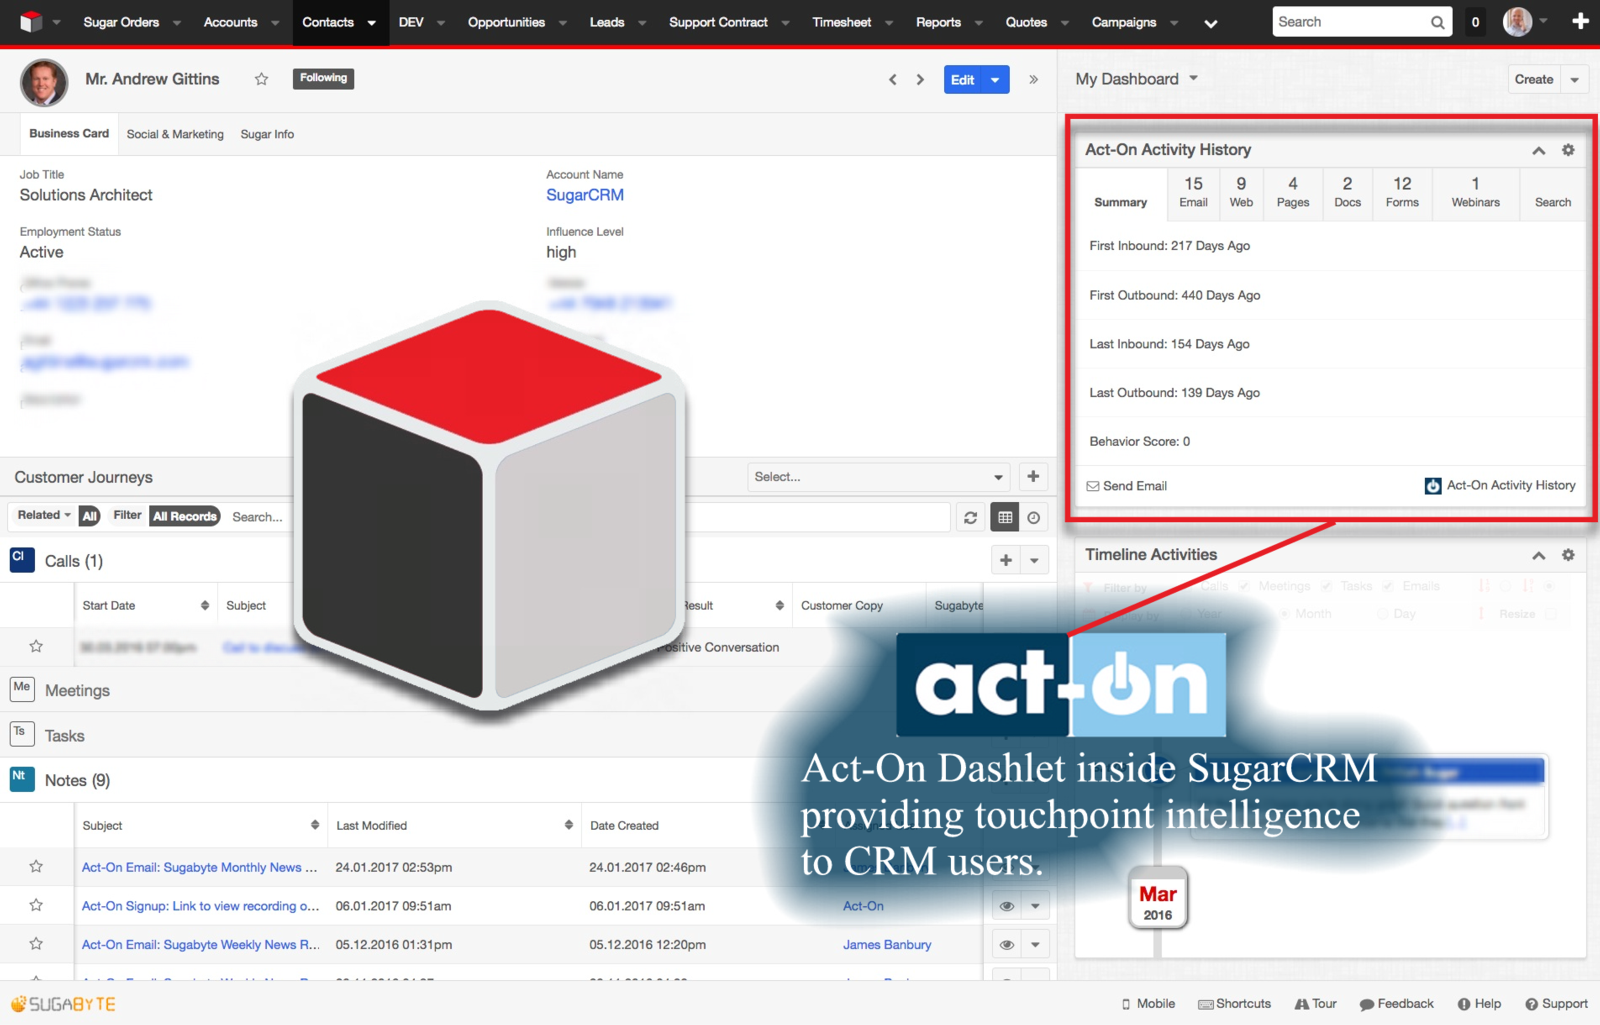 Act-on Dashlet inside SugarCRM providing touchpoint intelligence to CRM users.